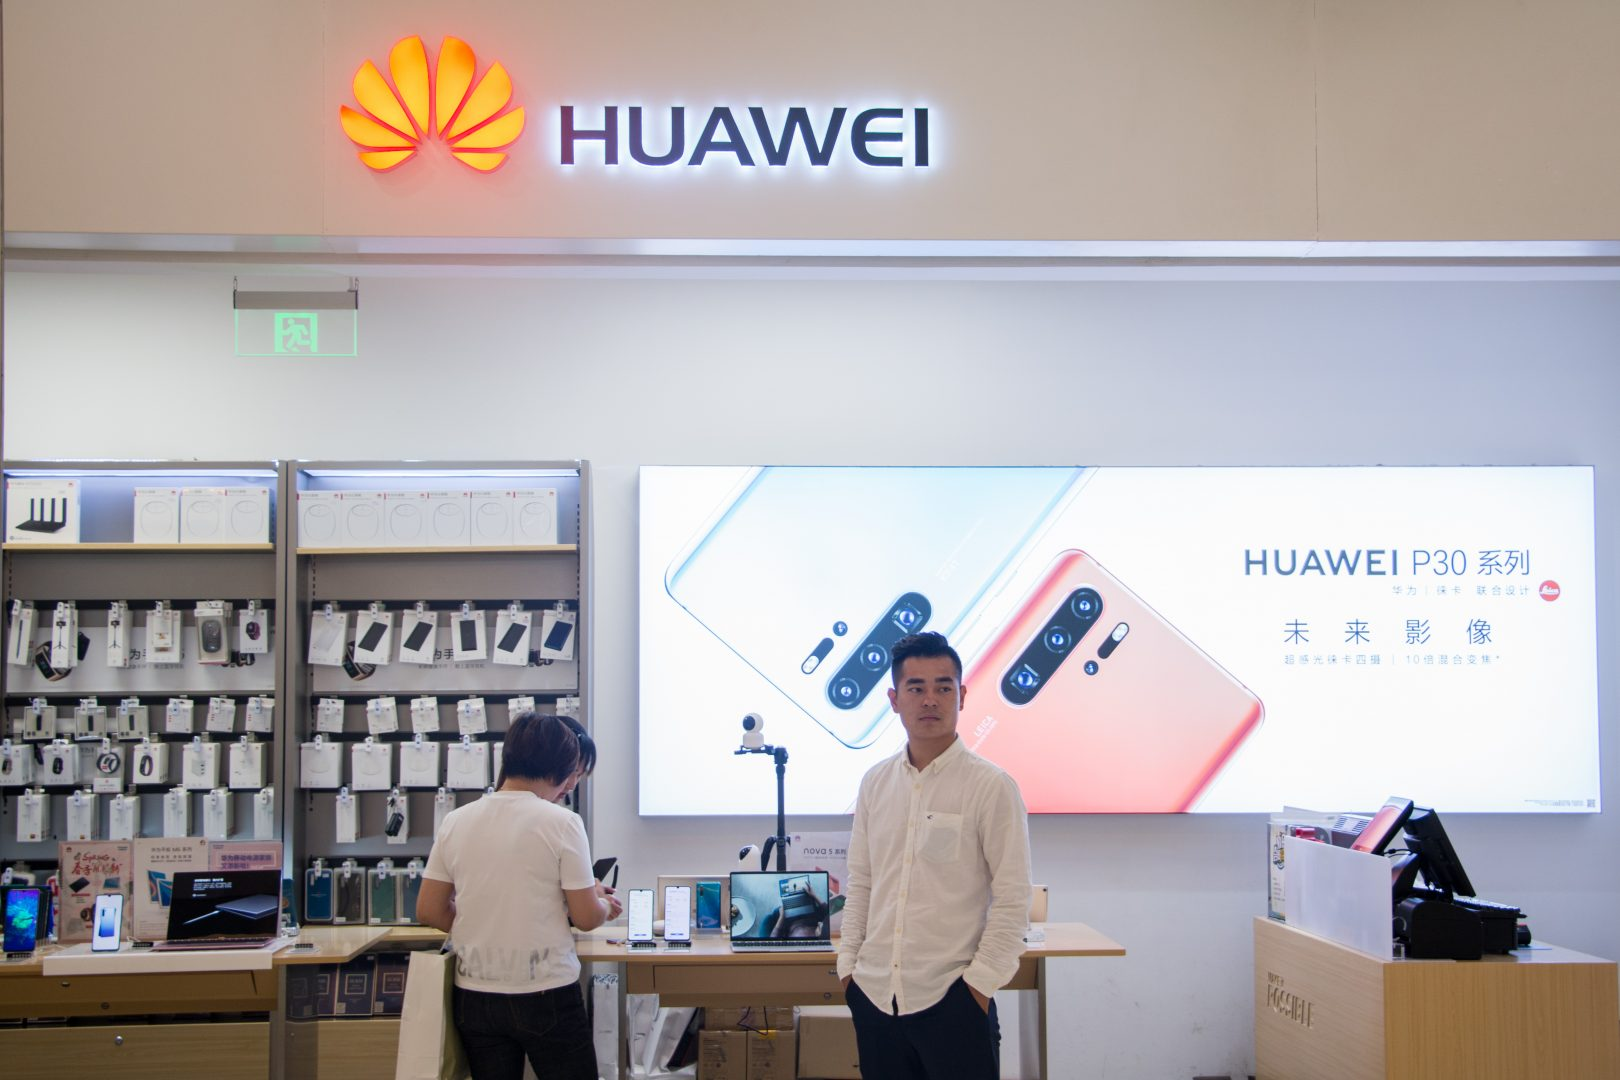 Image of article 'Huawei warns of retaliation for 'slaughter' after $12 billion miss'